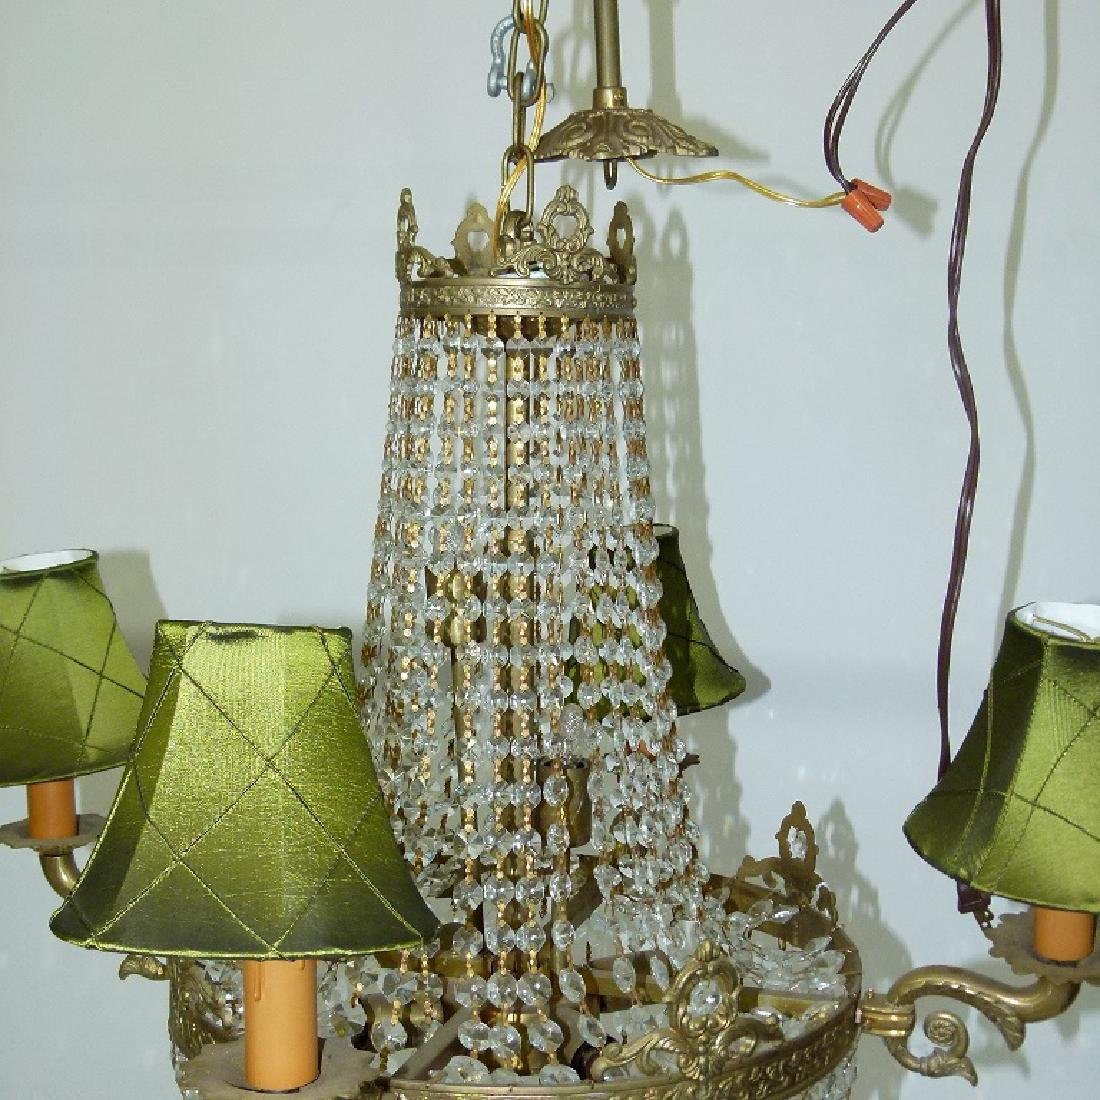 FRENCH BRONZE/CRYSTAL HANGING CHANDELIER C. 1920 - 2